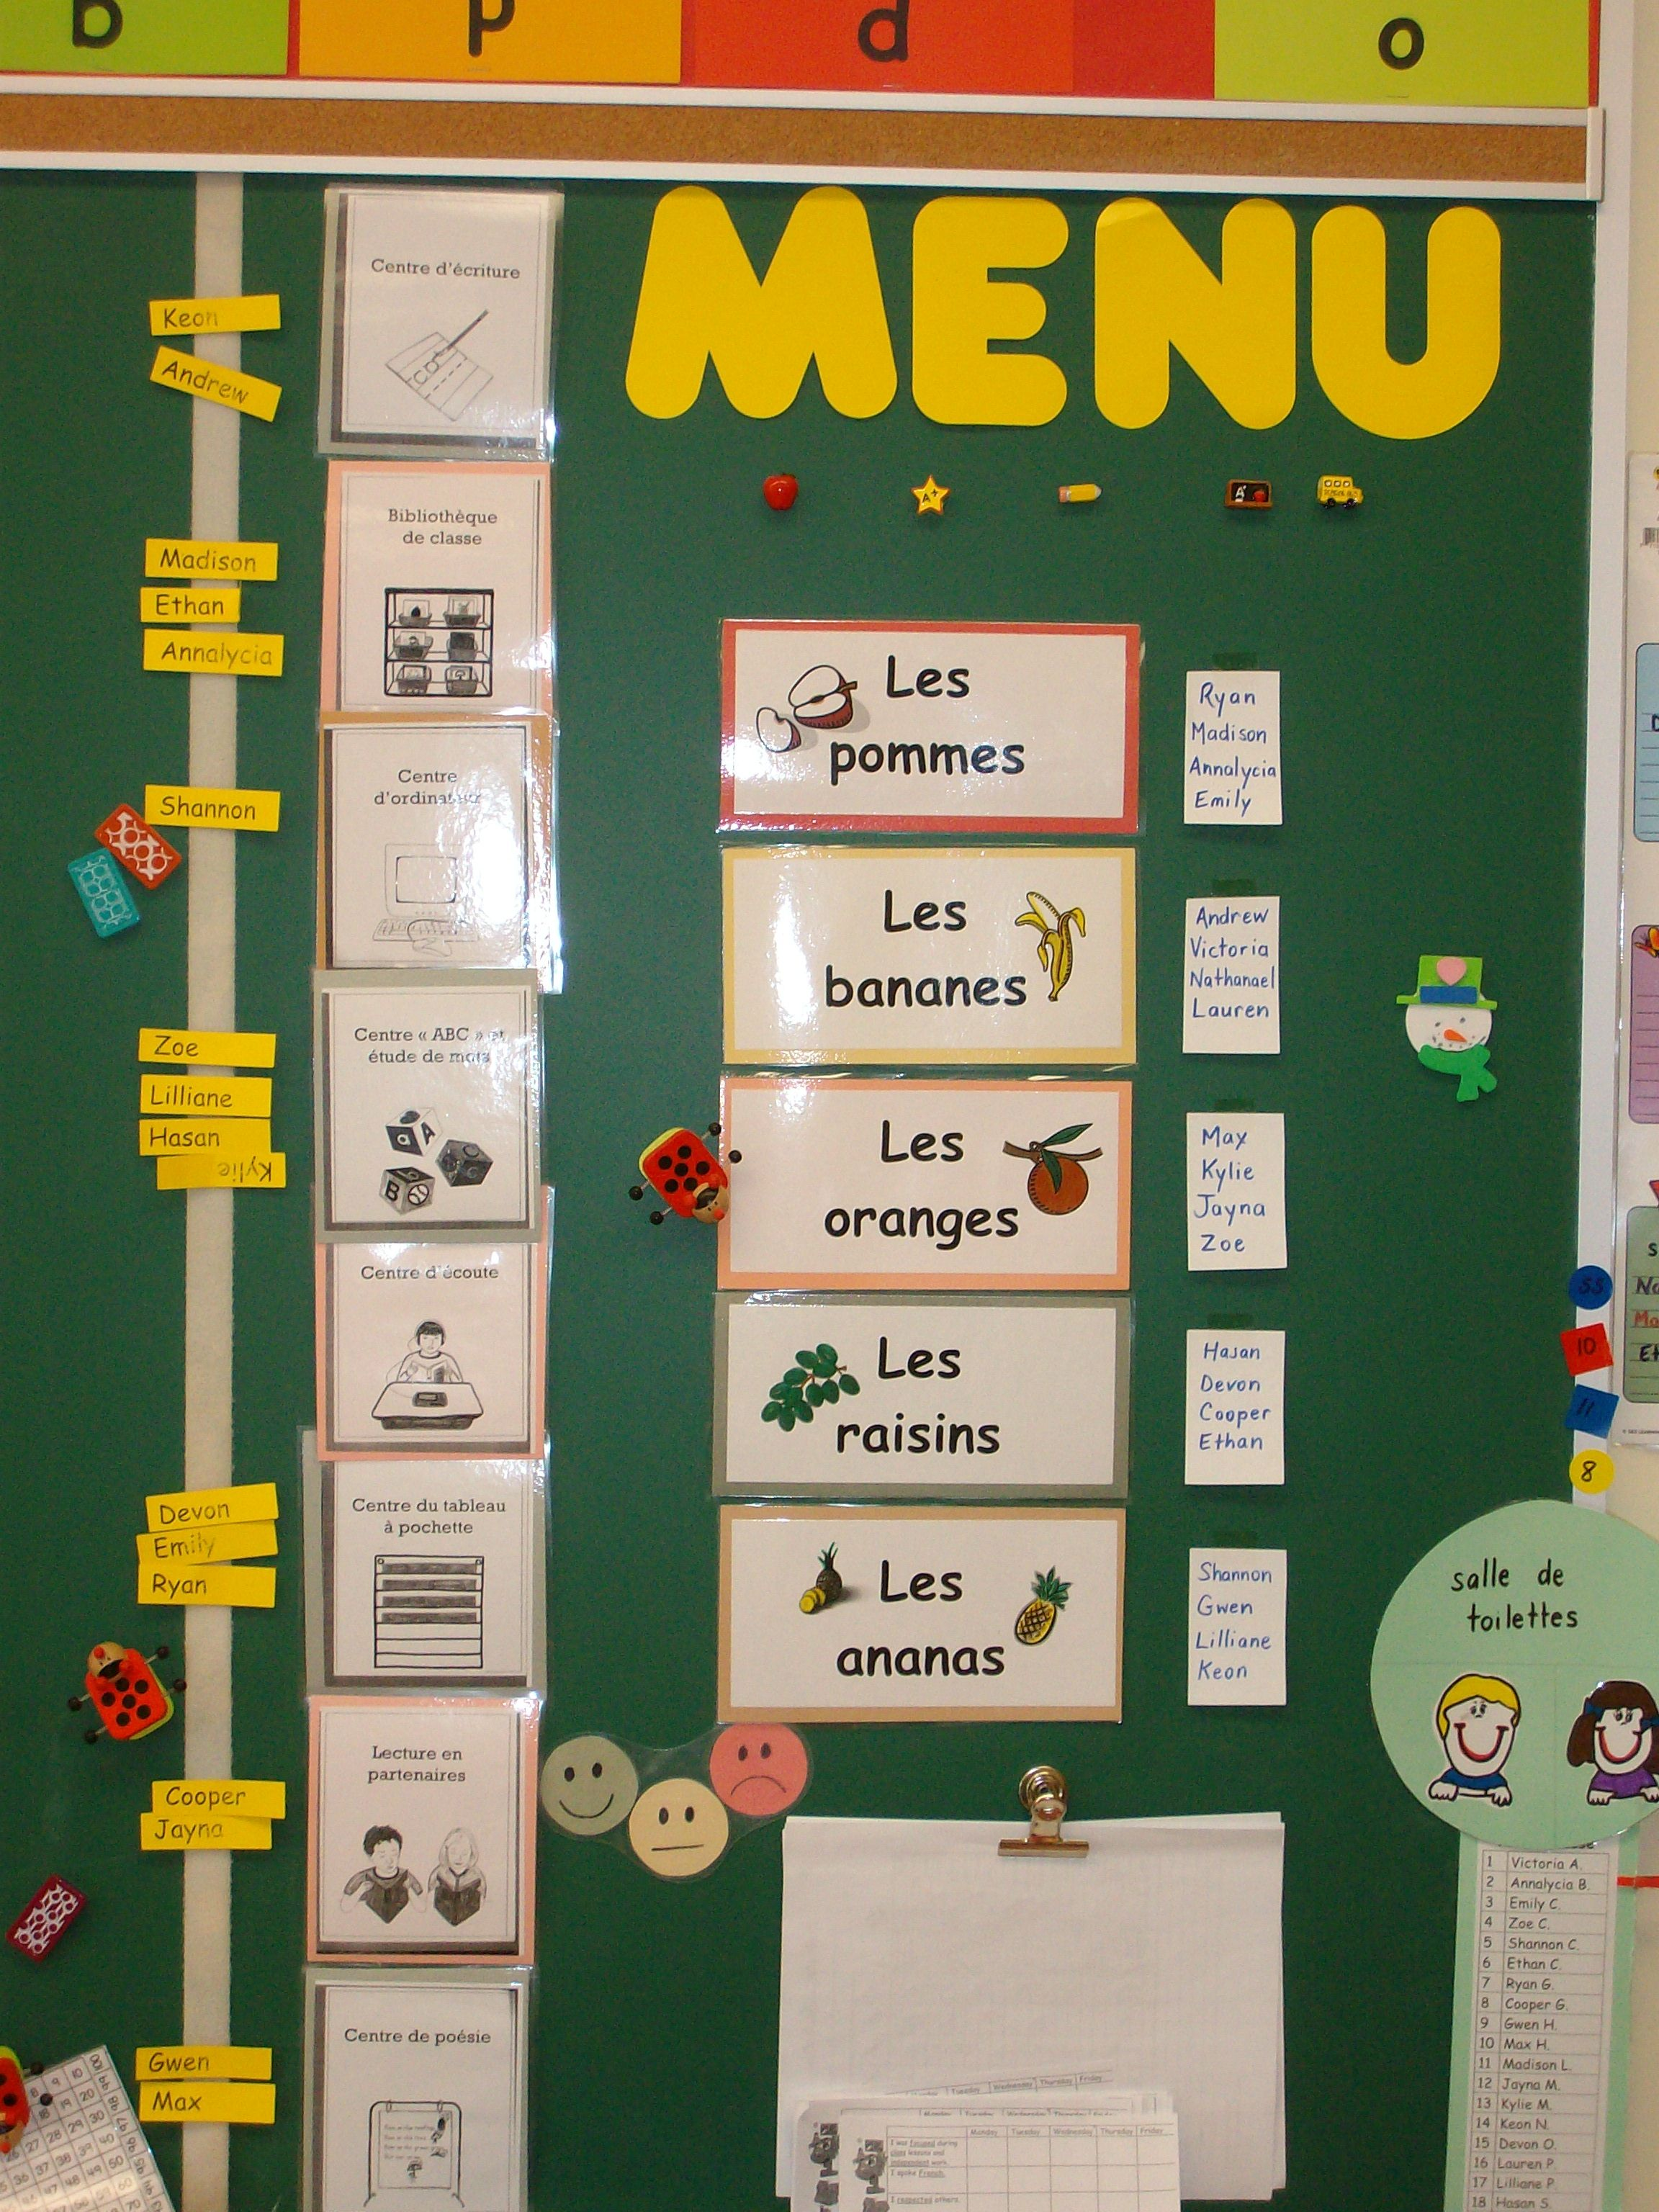 Pin by Renée Windle Ste-Marie on School Ideas   French immersion [ 3072 x 2304 Pixel ]